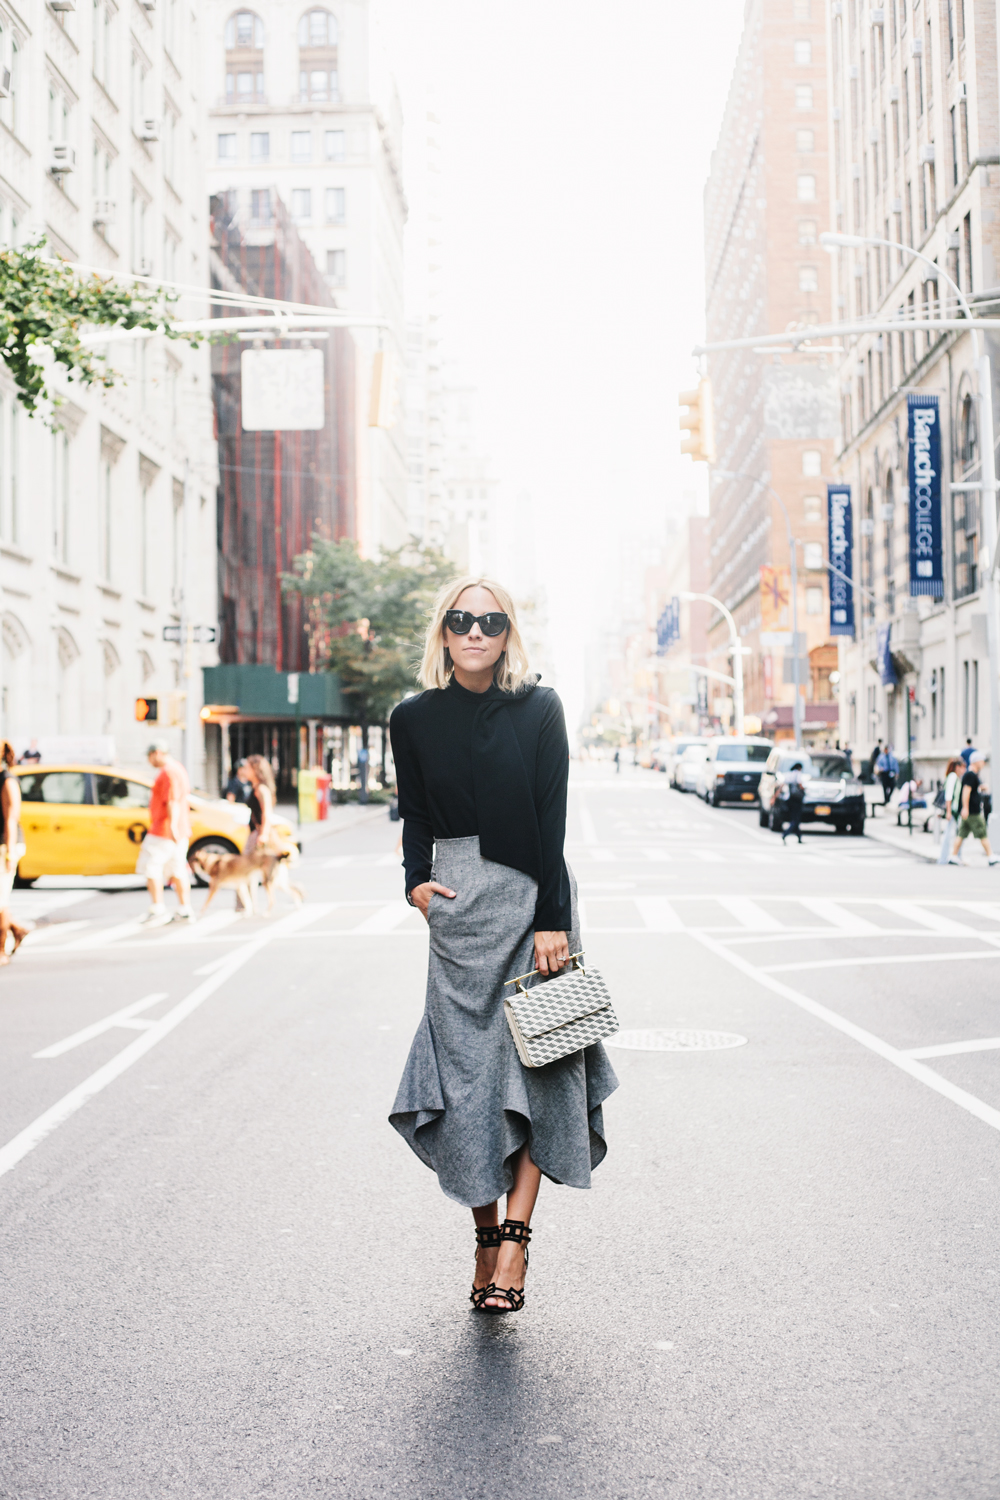 Try pairing a black bow top with a statement grey skirt this fall. Via Jacey Duprie. Bow Top: TY-LR Reniard, Skirt: Sam & Lavi.